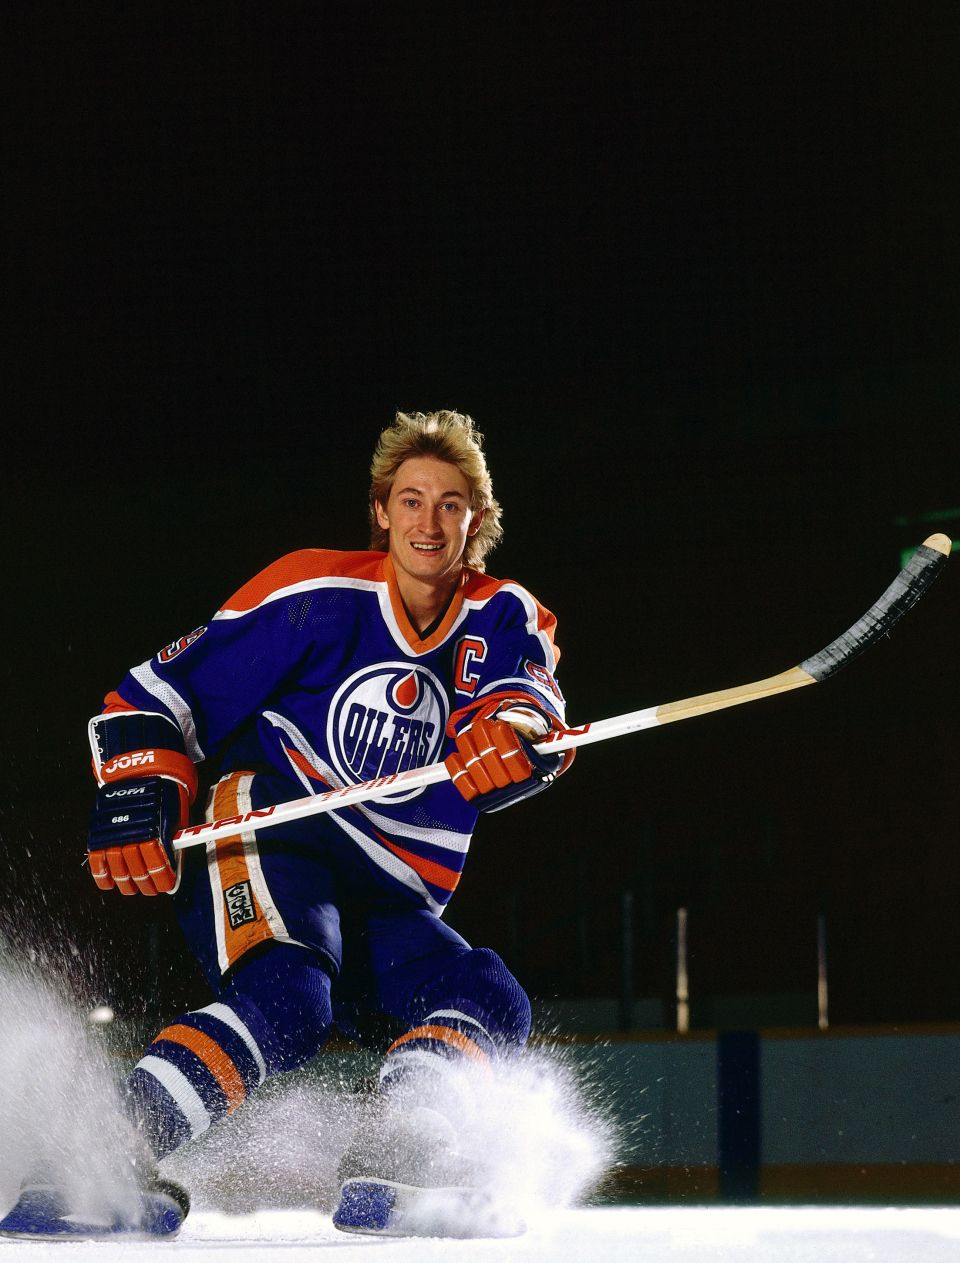 wayne gretzky the great one 100 greatest players wayne gretzky: 100 greatest nhl players 'the great one' all-time leader in goals, assists, points, holds 61 league records, won four stanley cup titles with oilers.